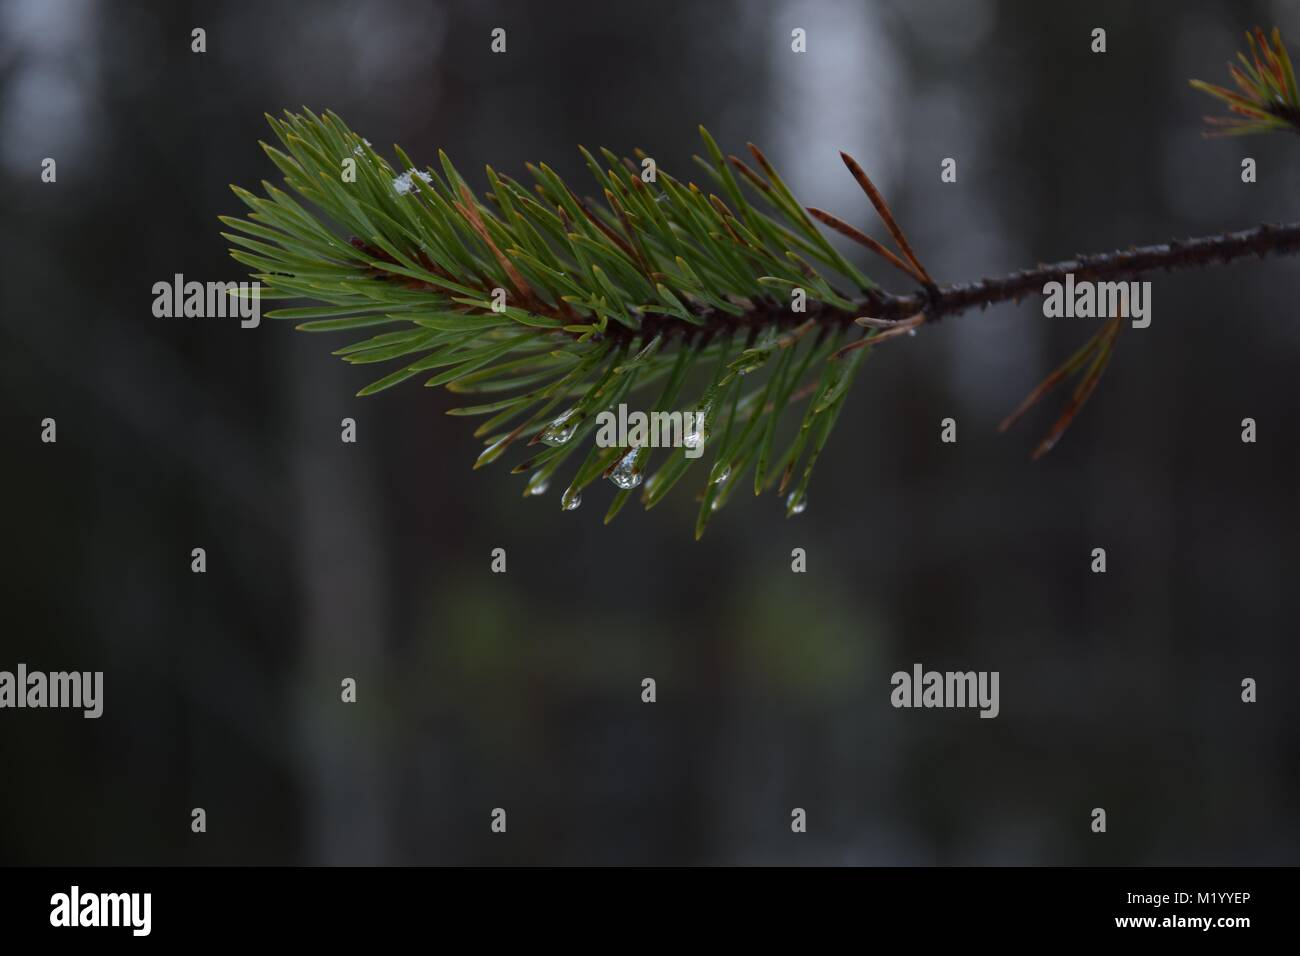 Frozen raindrops on a branch - Stock Image